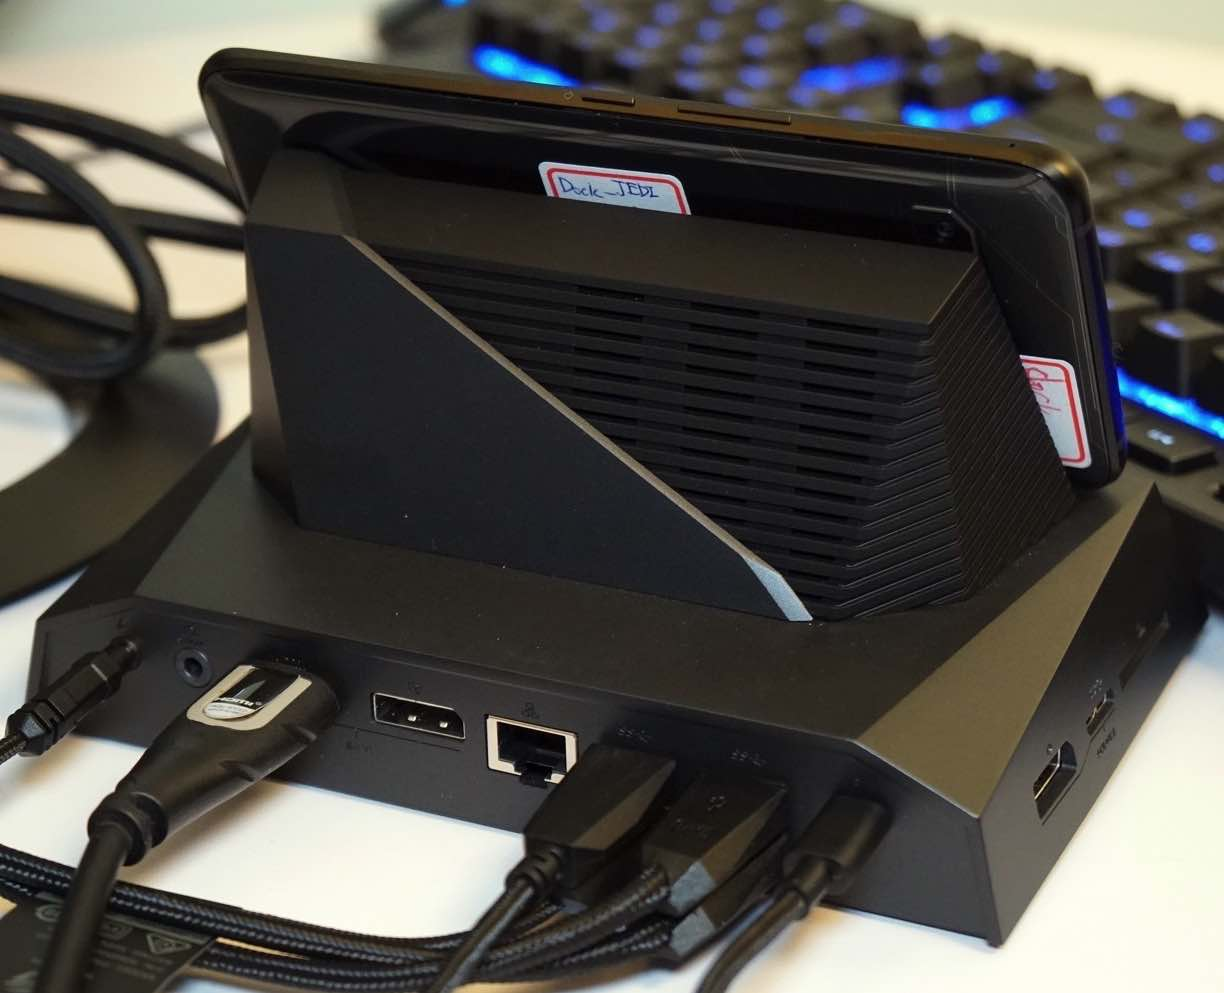 asus-rog-phone-dock